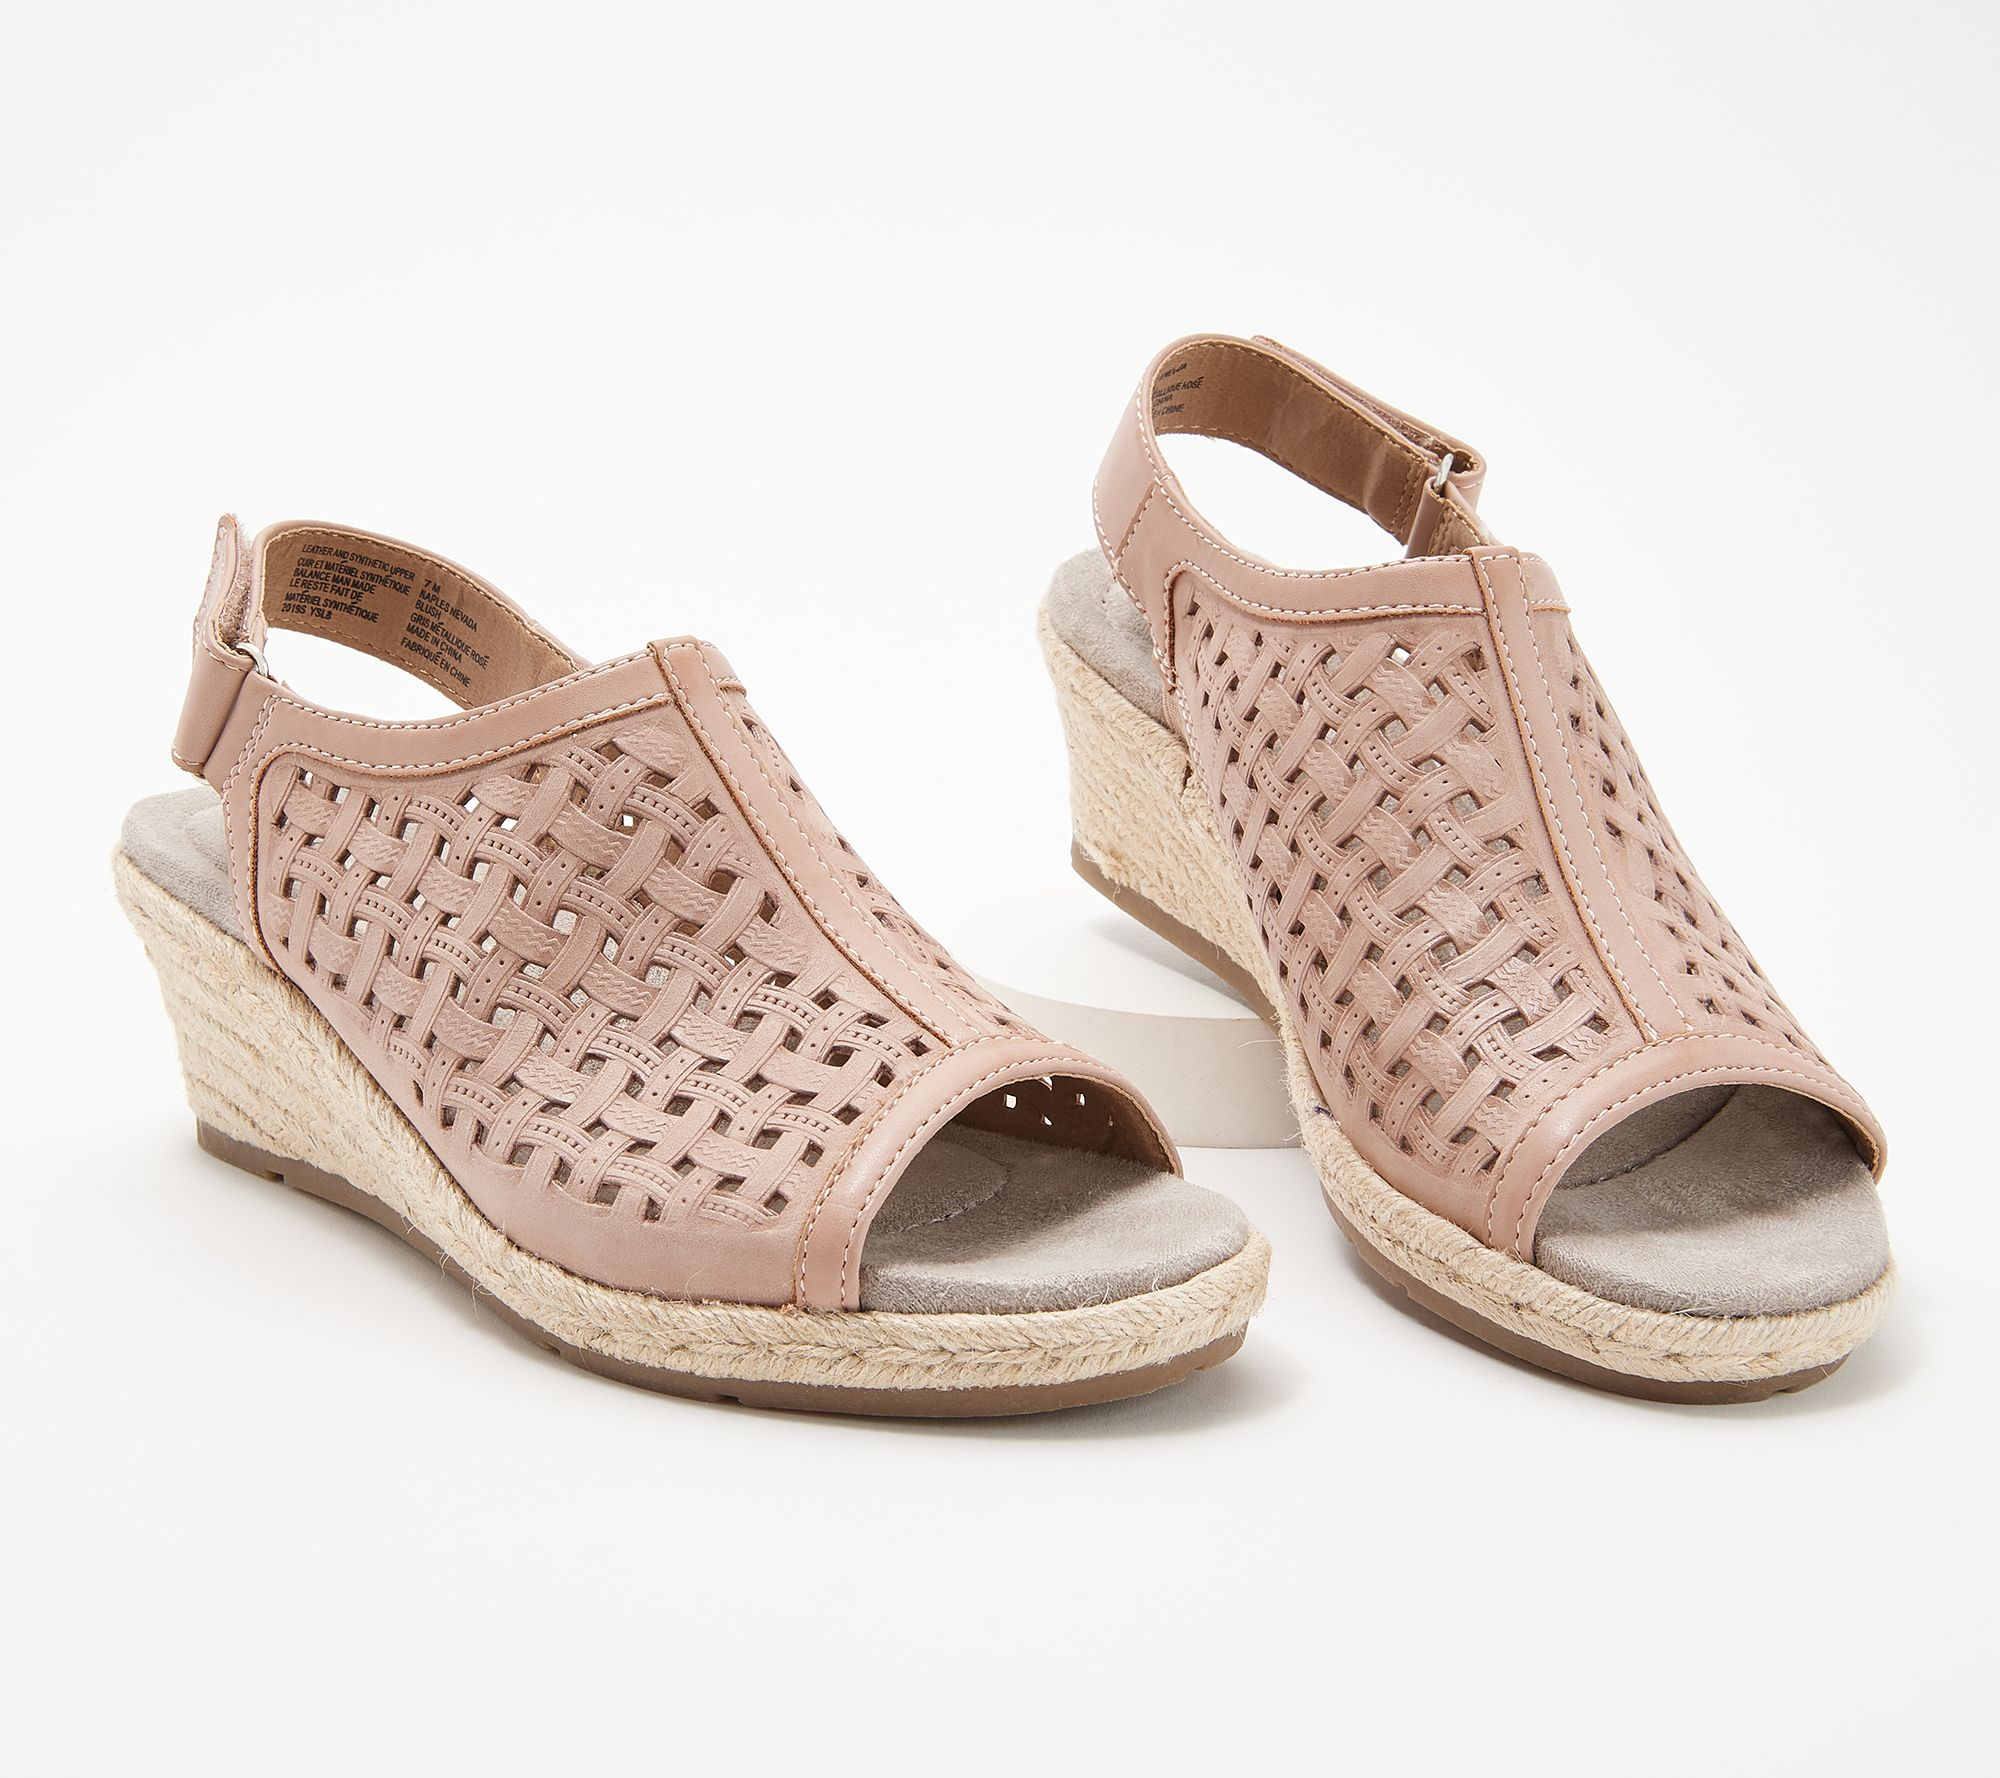 Naples Leather Perforated Page 1 Origins Wedges Nevada Earth rdCQWxBoe